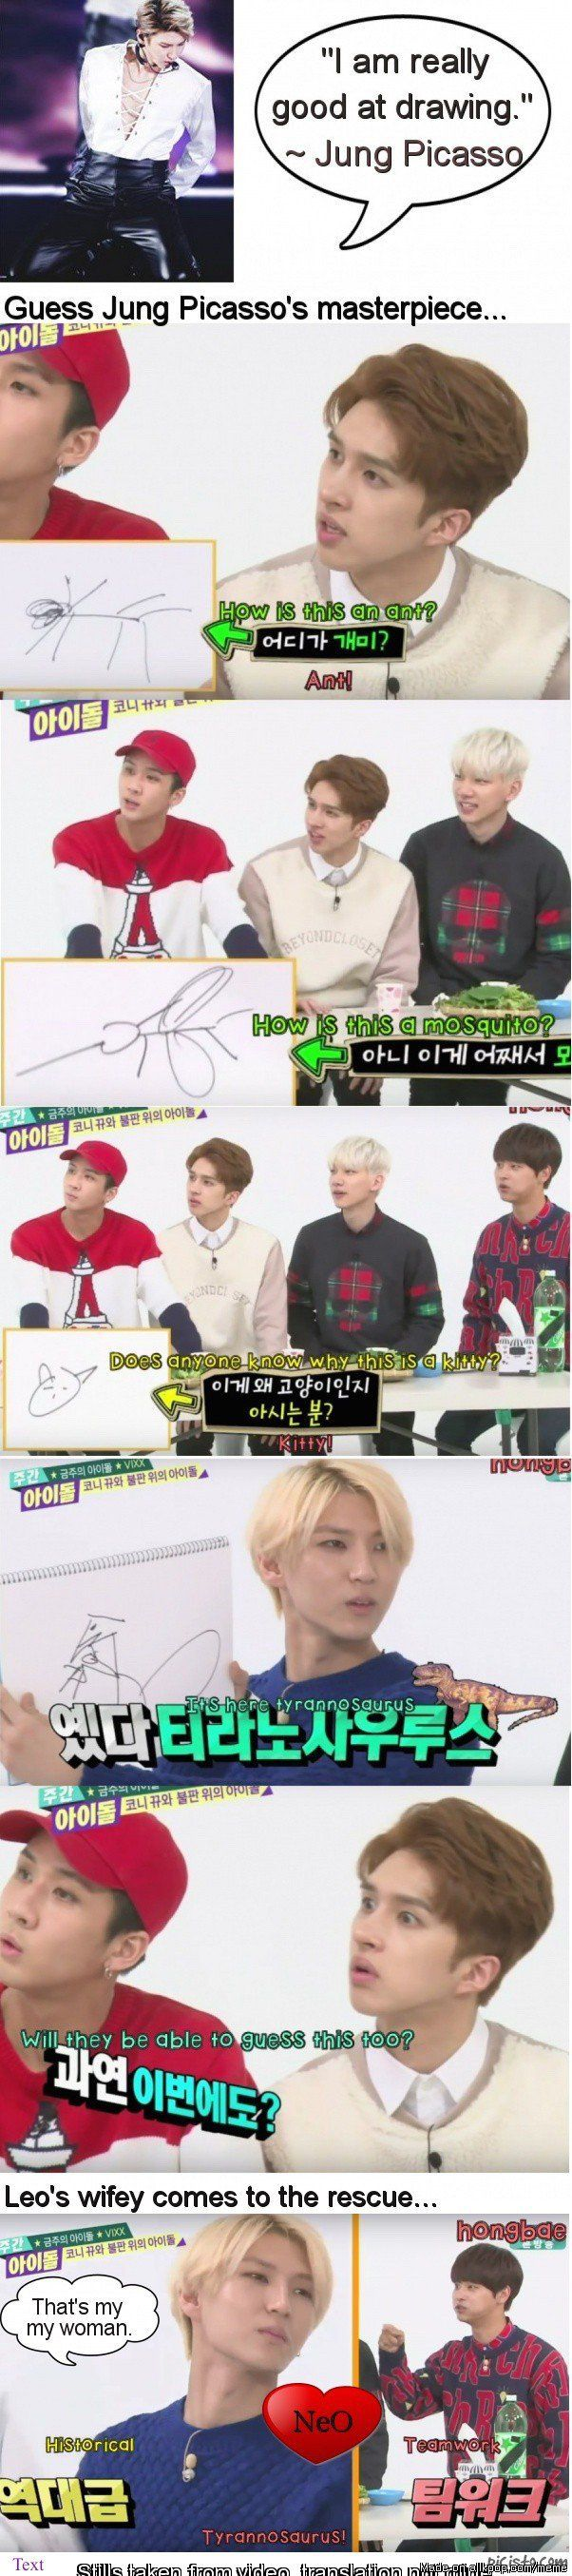 Hahahaha his drawings. It was really a miracle that the members were able to guess them.